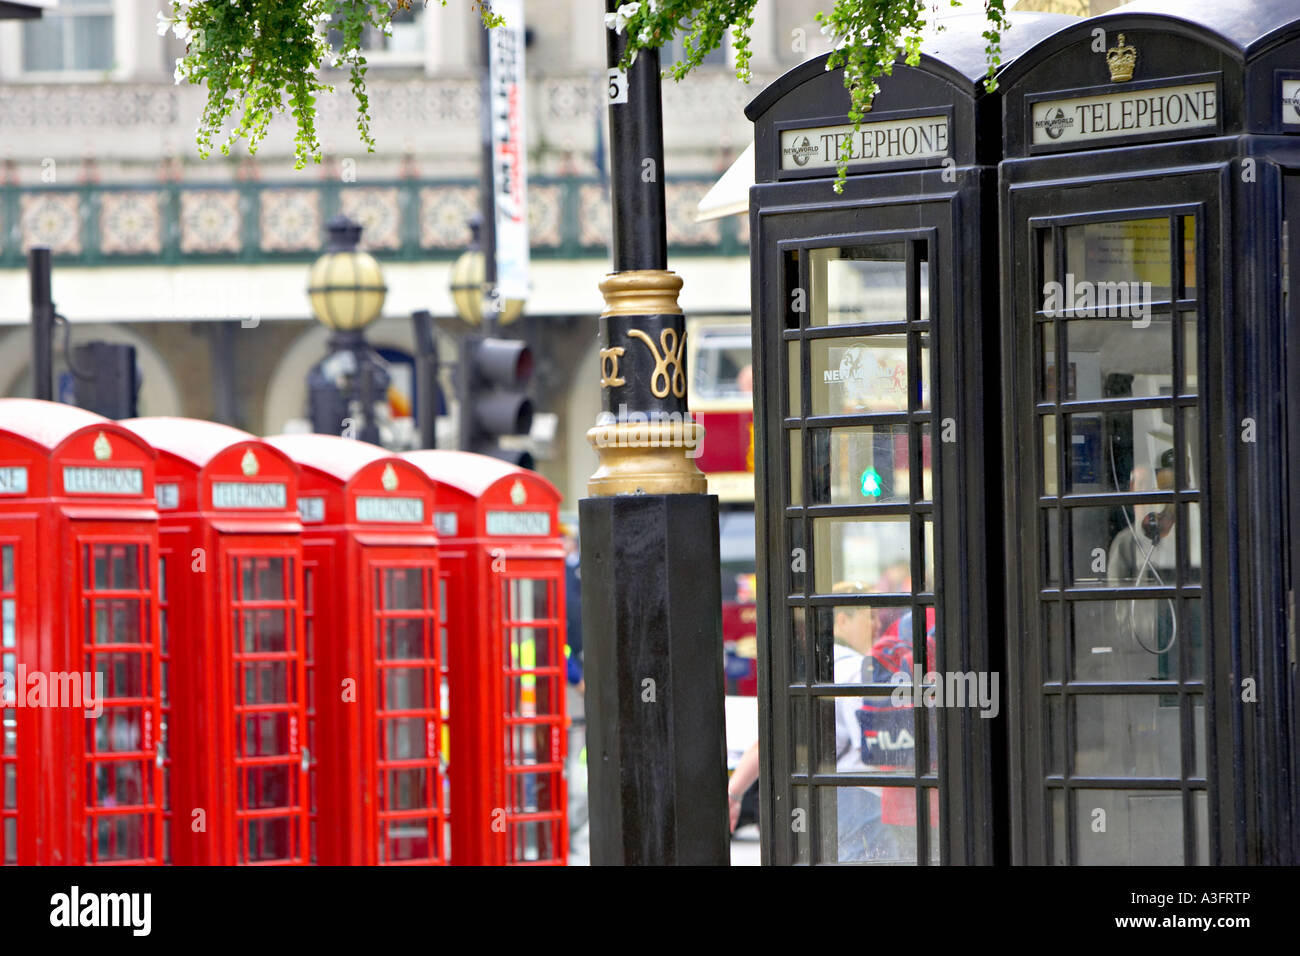 Telephone booths in London England telephone booth England Europe ...